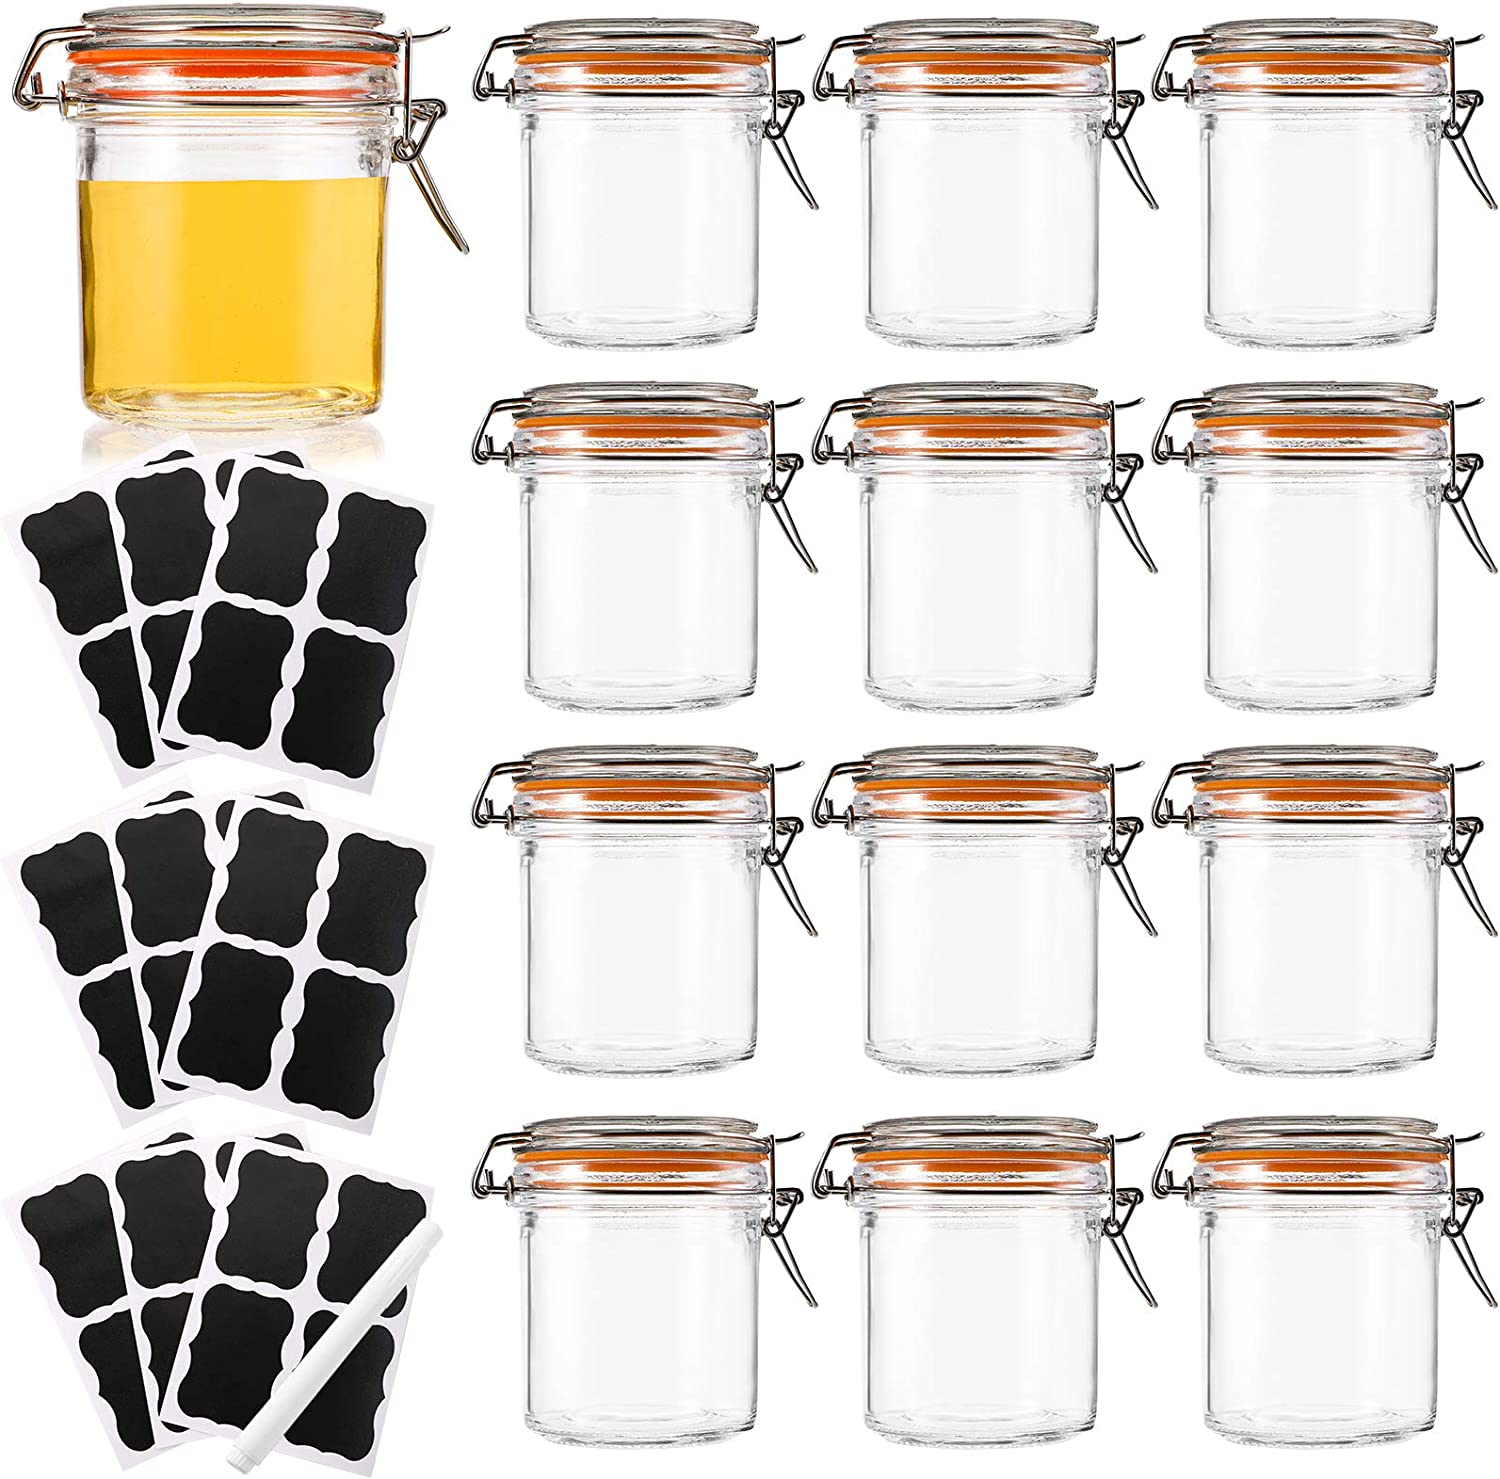 Kingrol 12 Pack 8 Ounces Glass Jars with Airtight Lid, Wide Mouth Storage Canister Jars for Canning, Preserving, Jam, Honey, Baby Food Storage